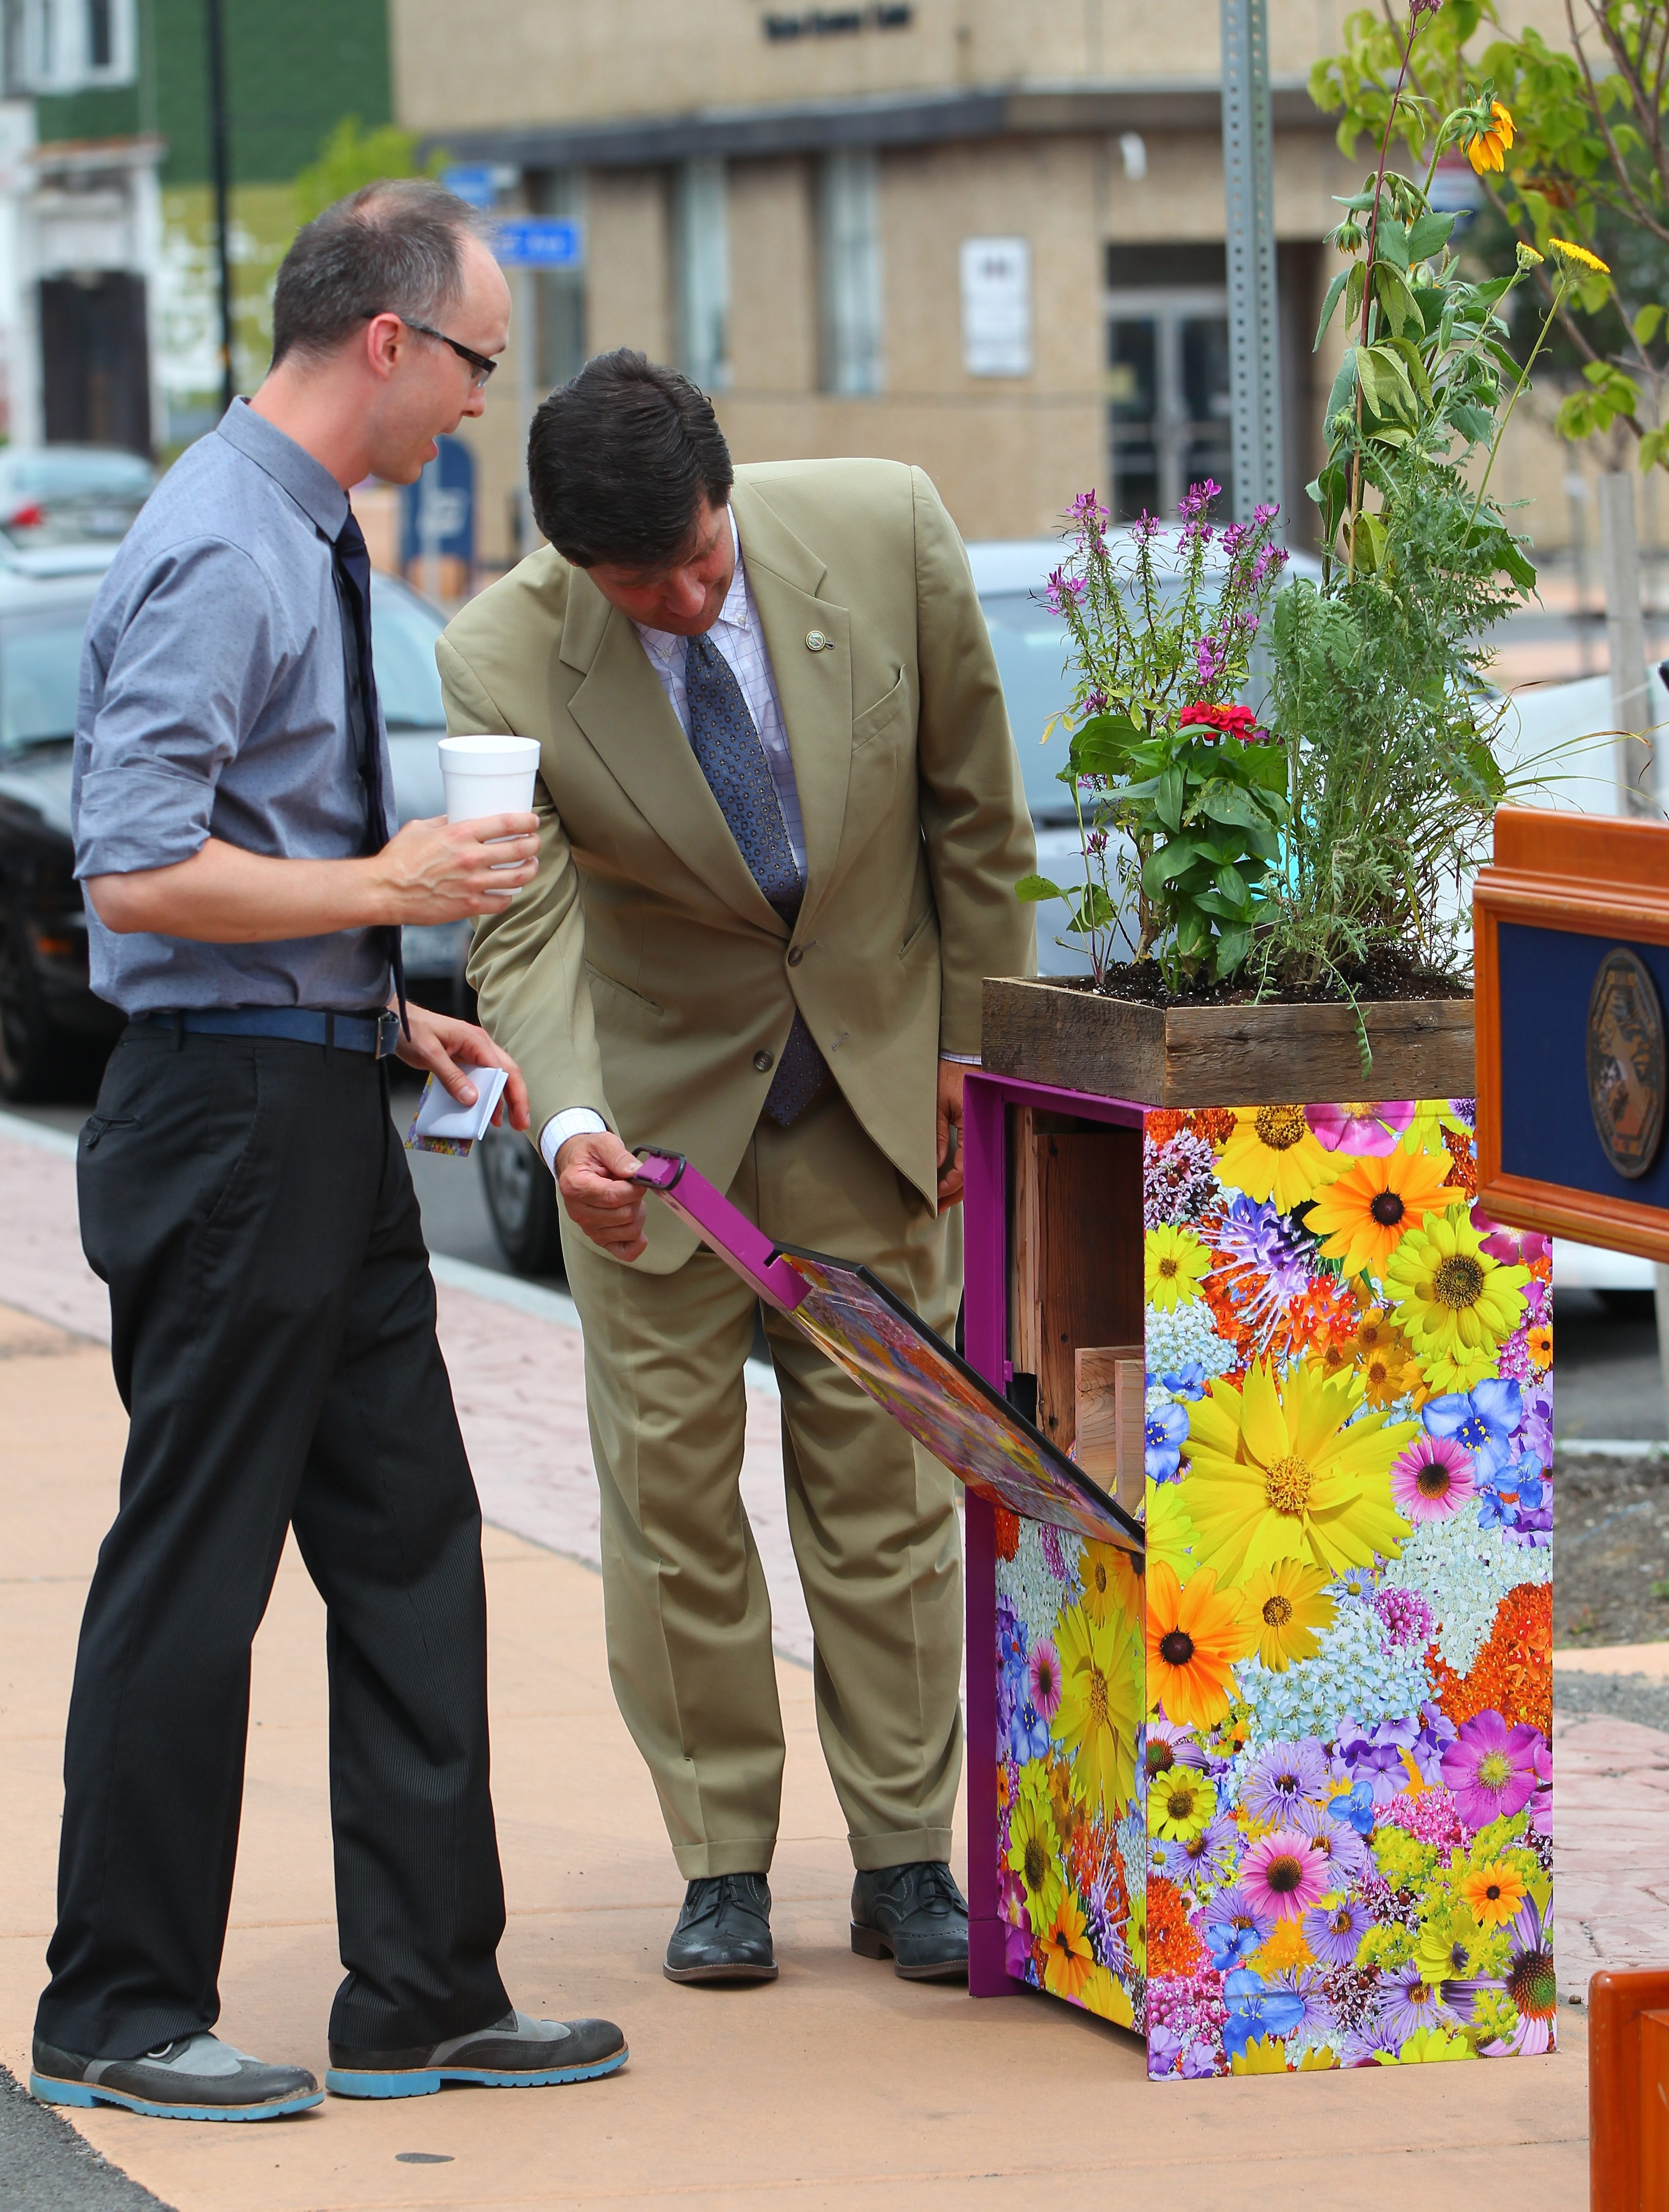 Erie County Executive Mark C. Poloncarz, right, and Albright-Knox Curator of Public Art Aaron Ott look at a special newspaper box filled with wildflower seeds before a news conference on Fillmore Avenue in Buffalo on Monday.